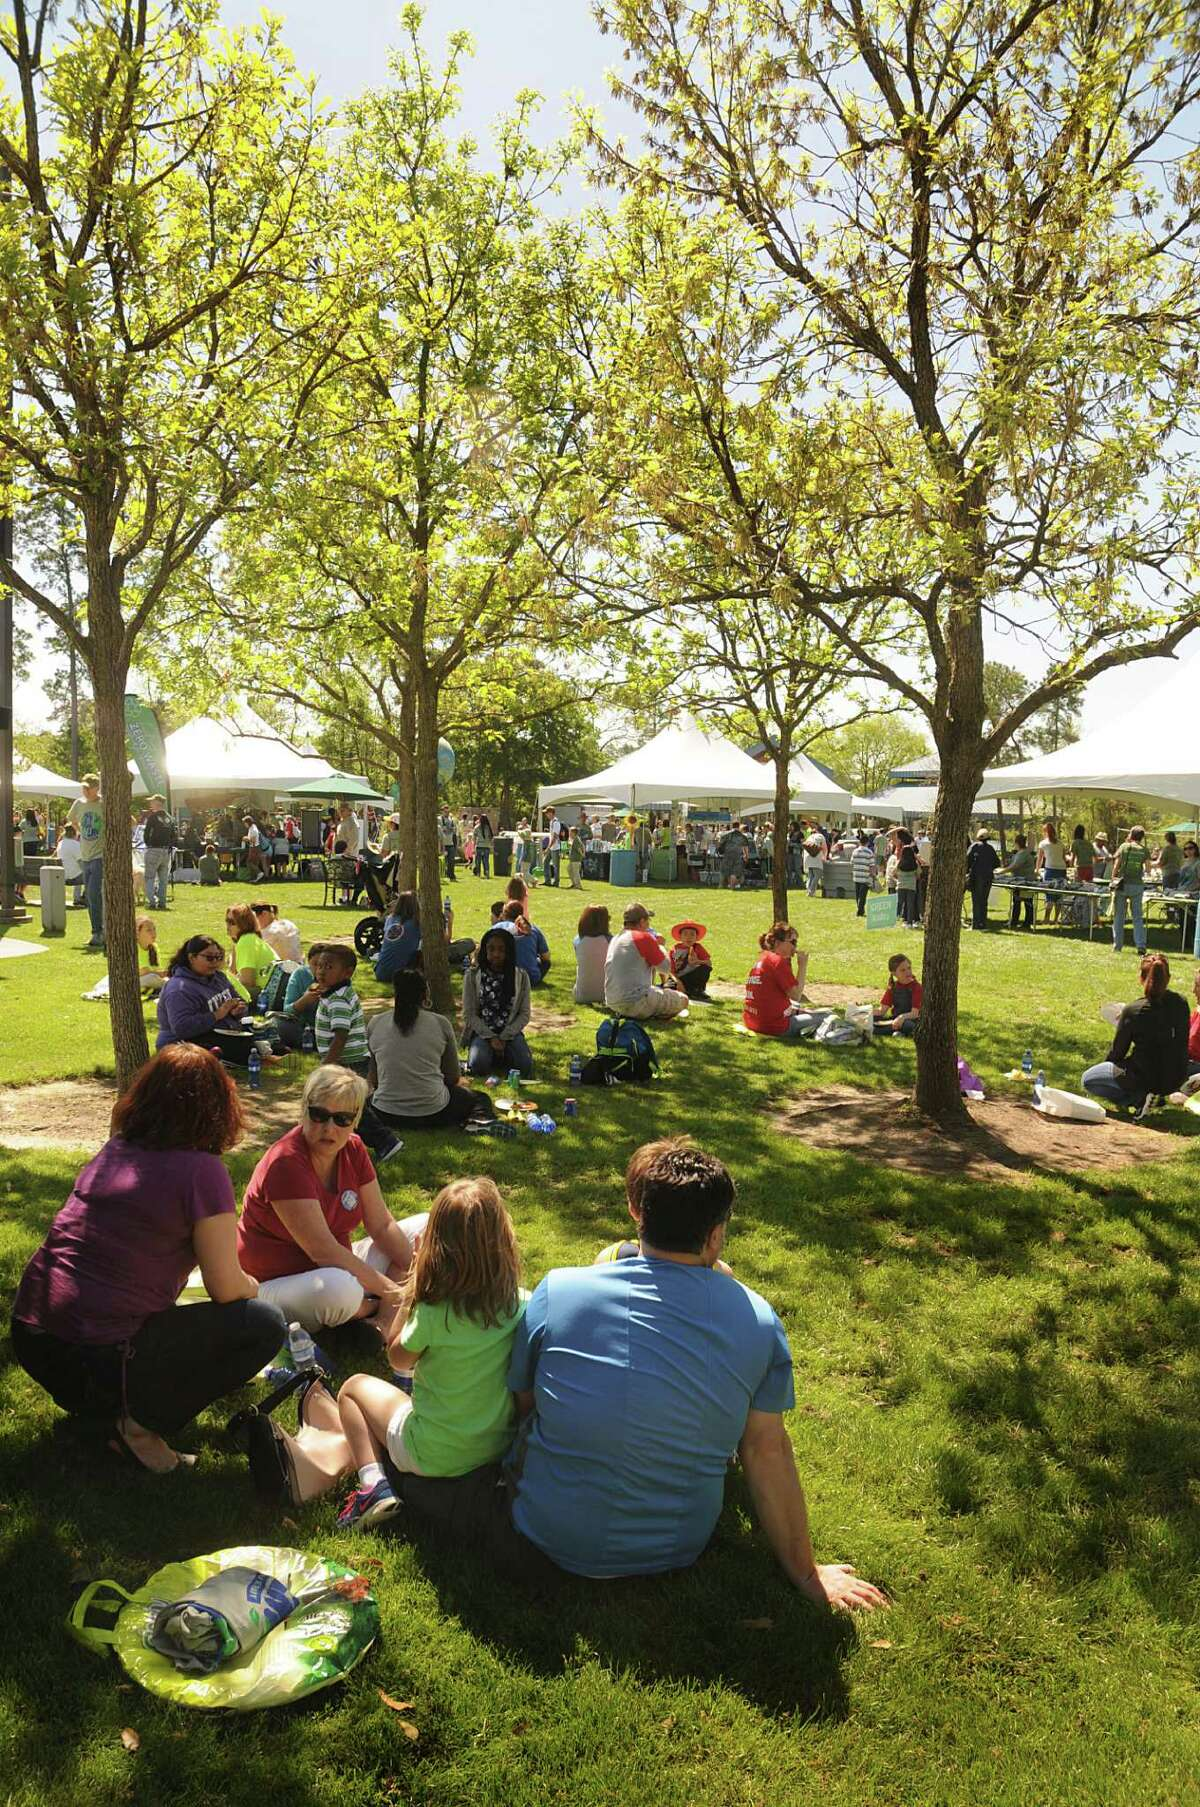 Guests enjoy the shade as they rest and eat during the Earth Day celebration at Northshore Park. Photograph by David Hopper